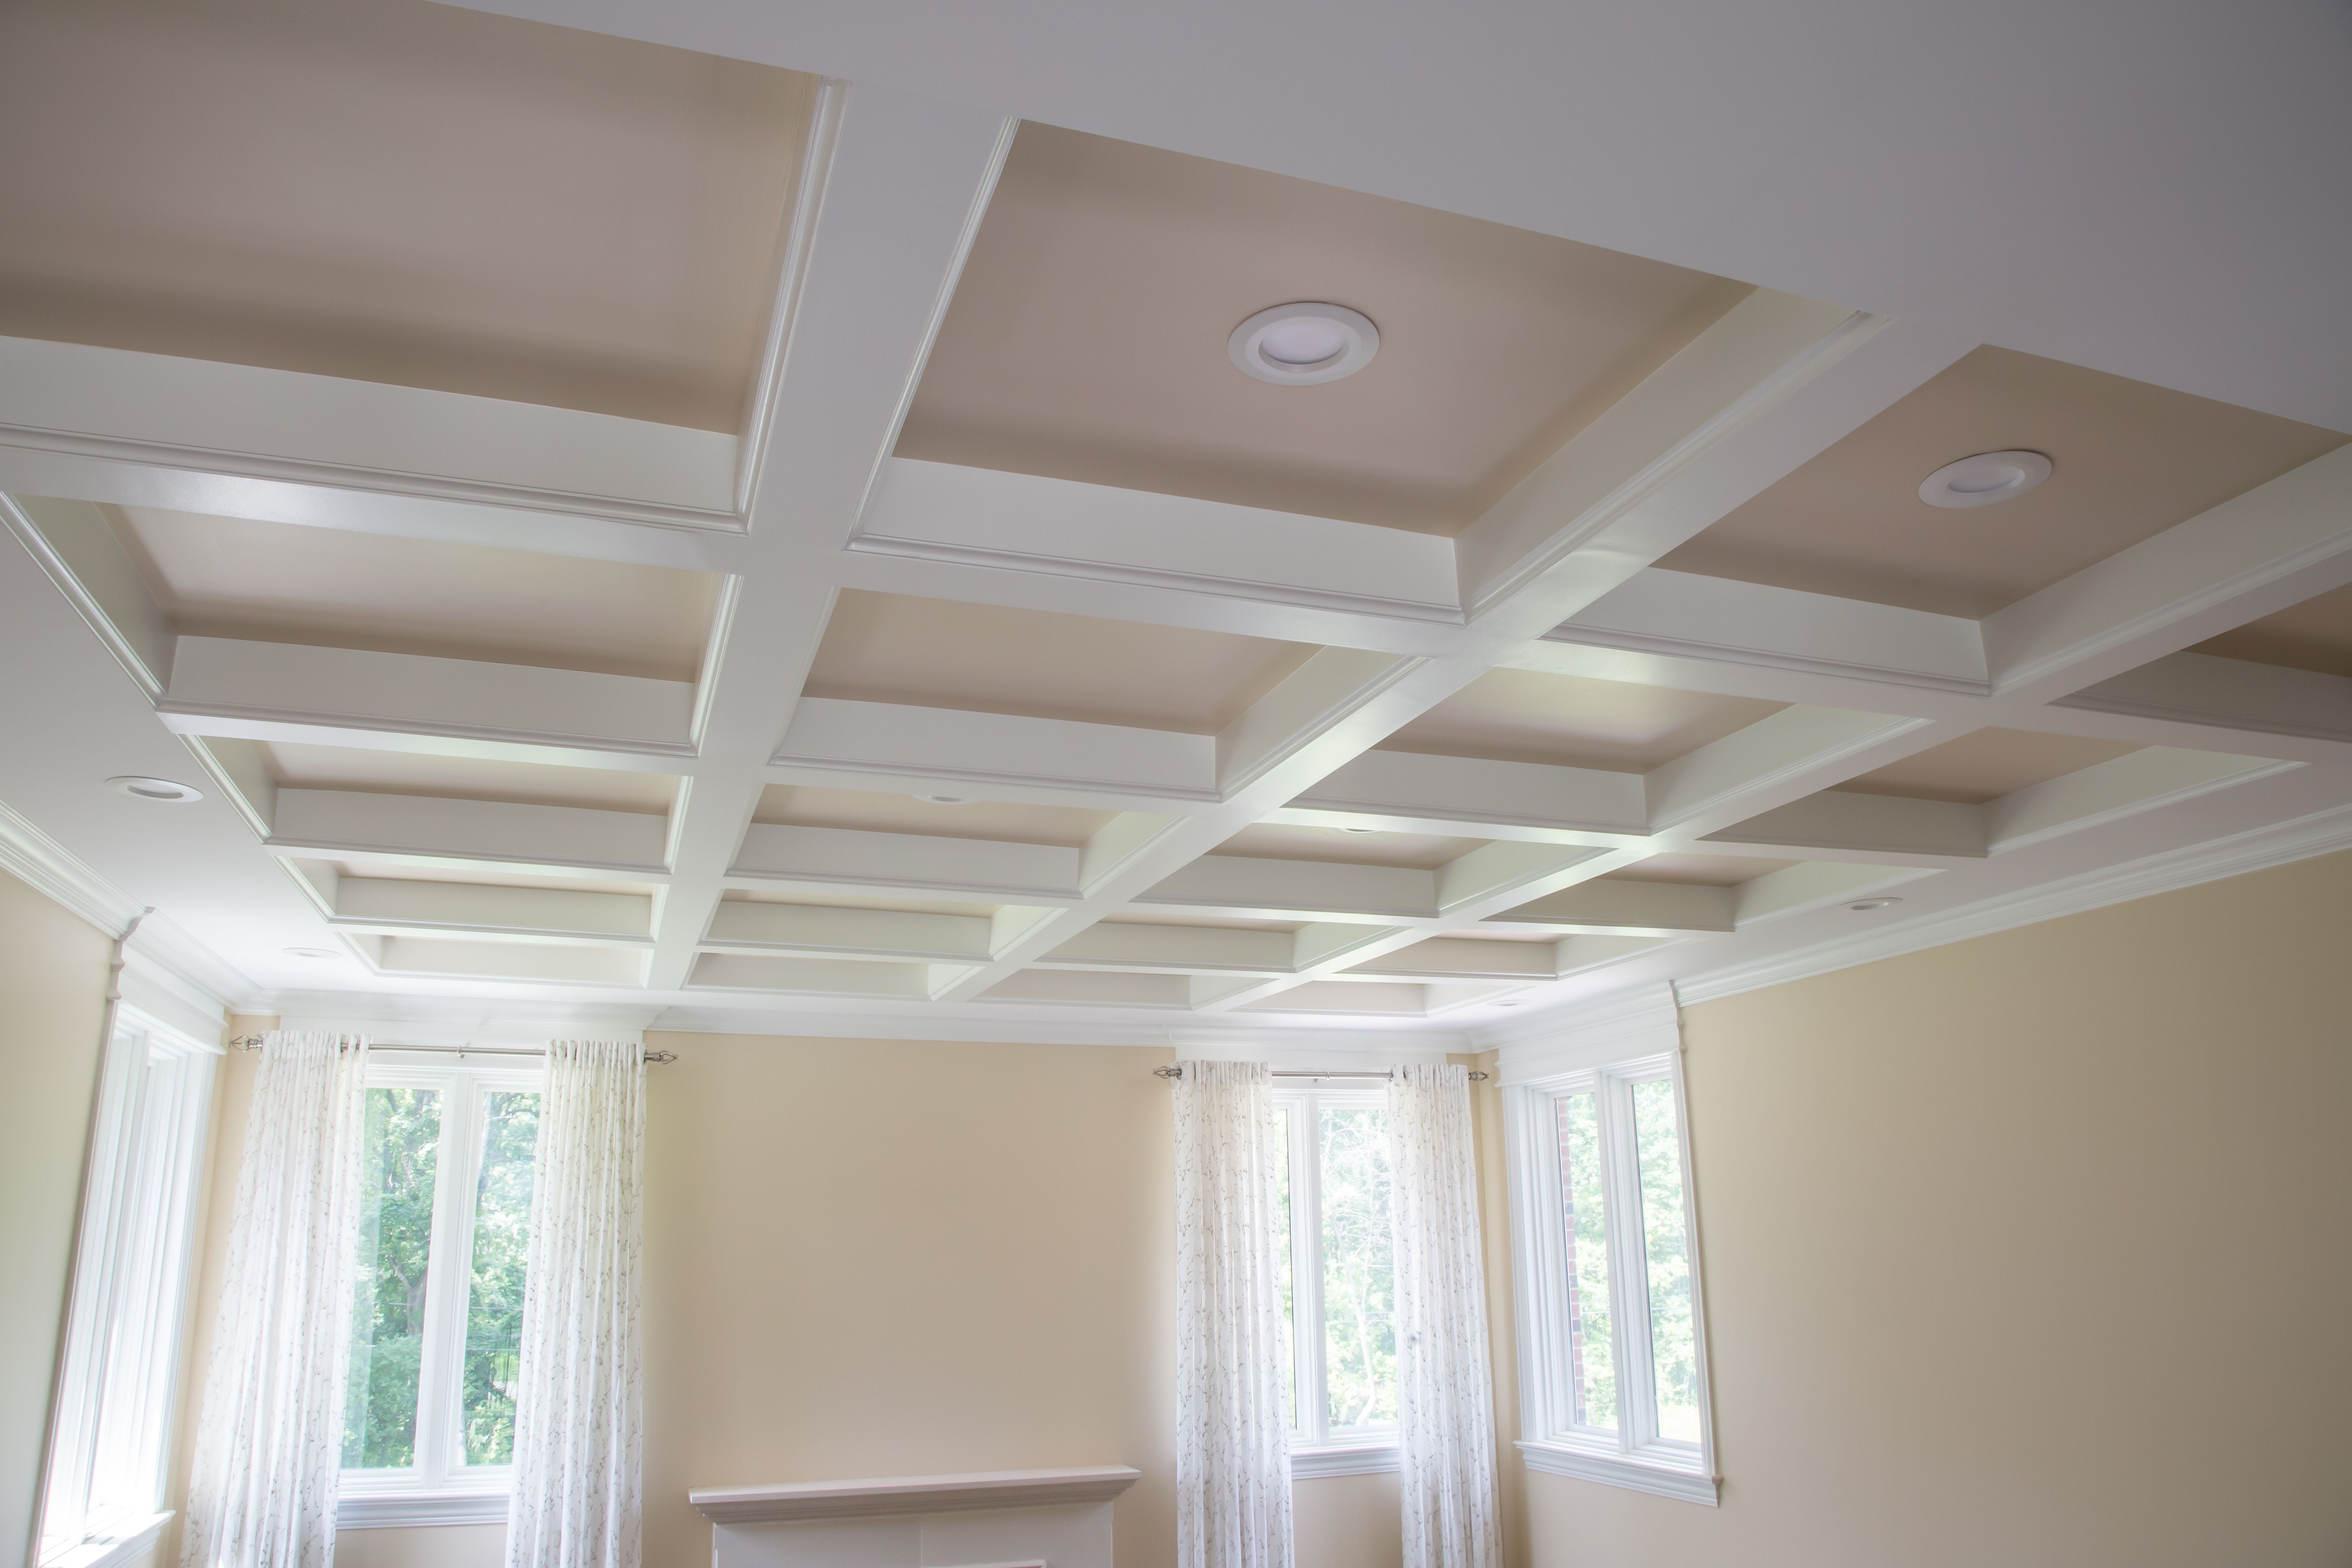 Designing a coffered ceiling is simple and affordable with trim tex drywall products